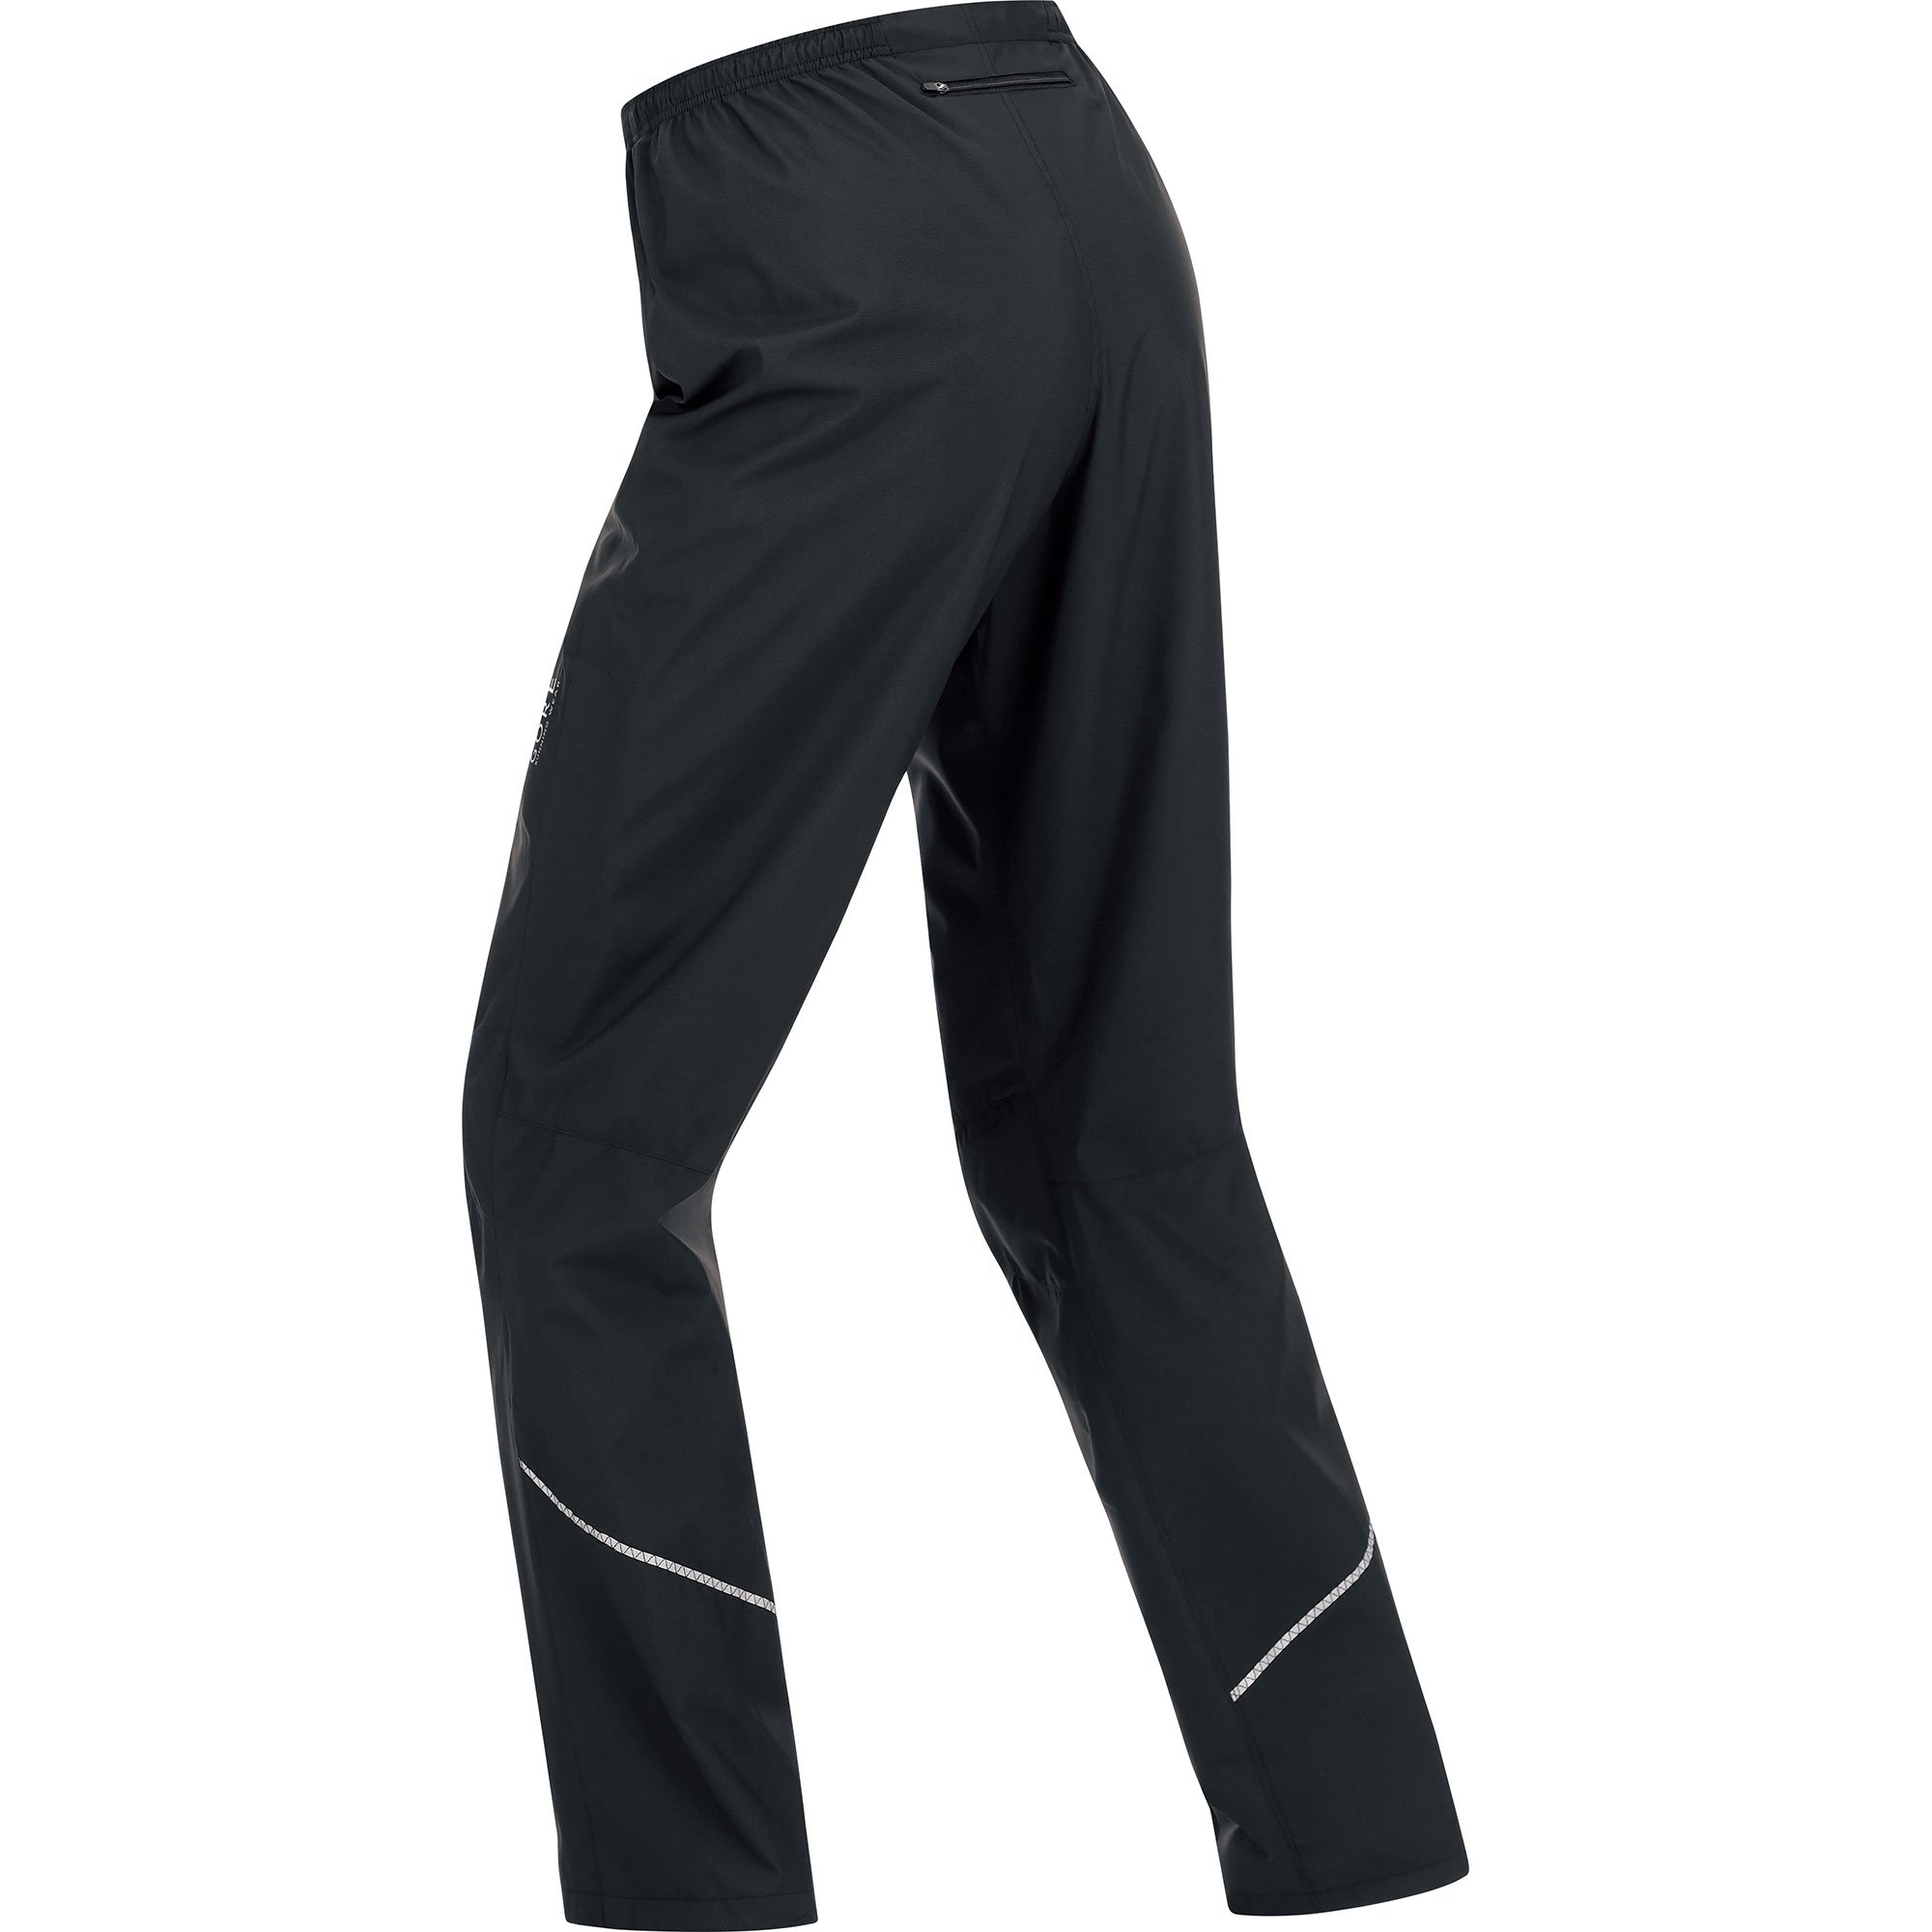 Gore Running Wear Men's Essential Active Shell Pant, Black, X-Large by Gore Running Wear (Image #3)